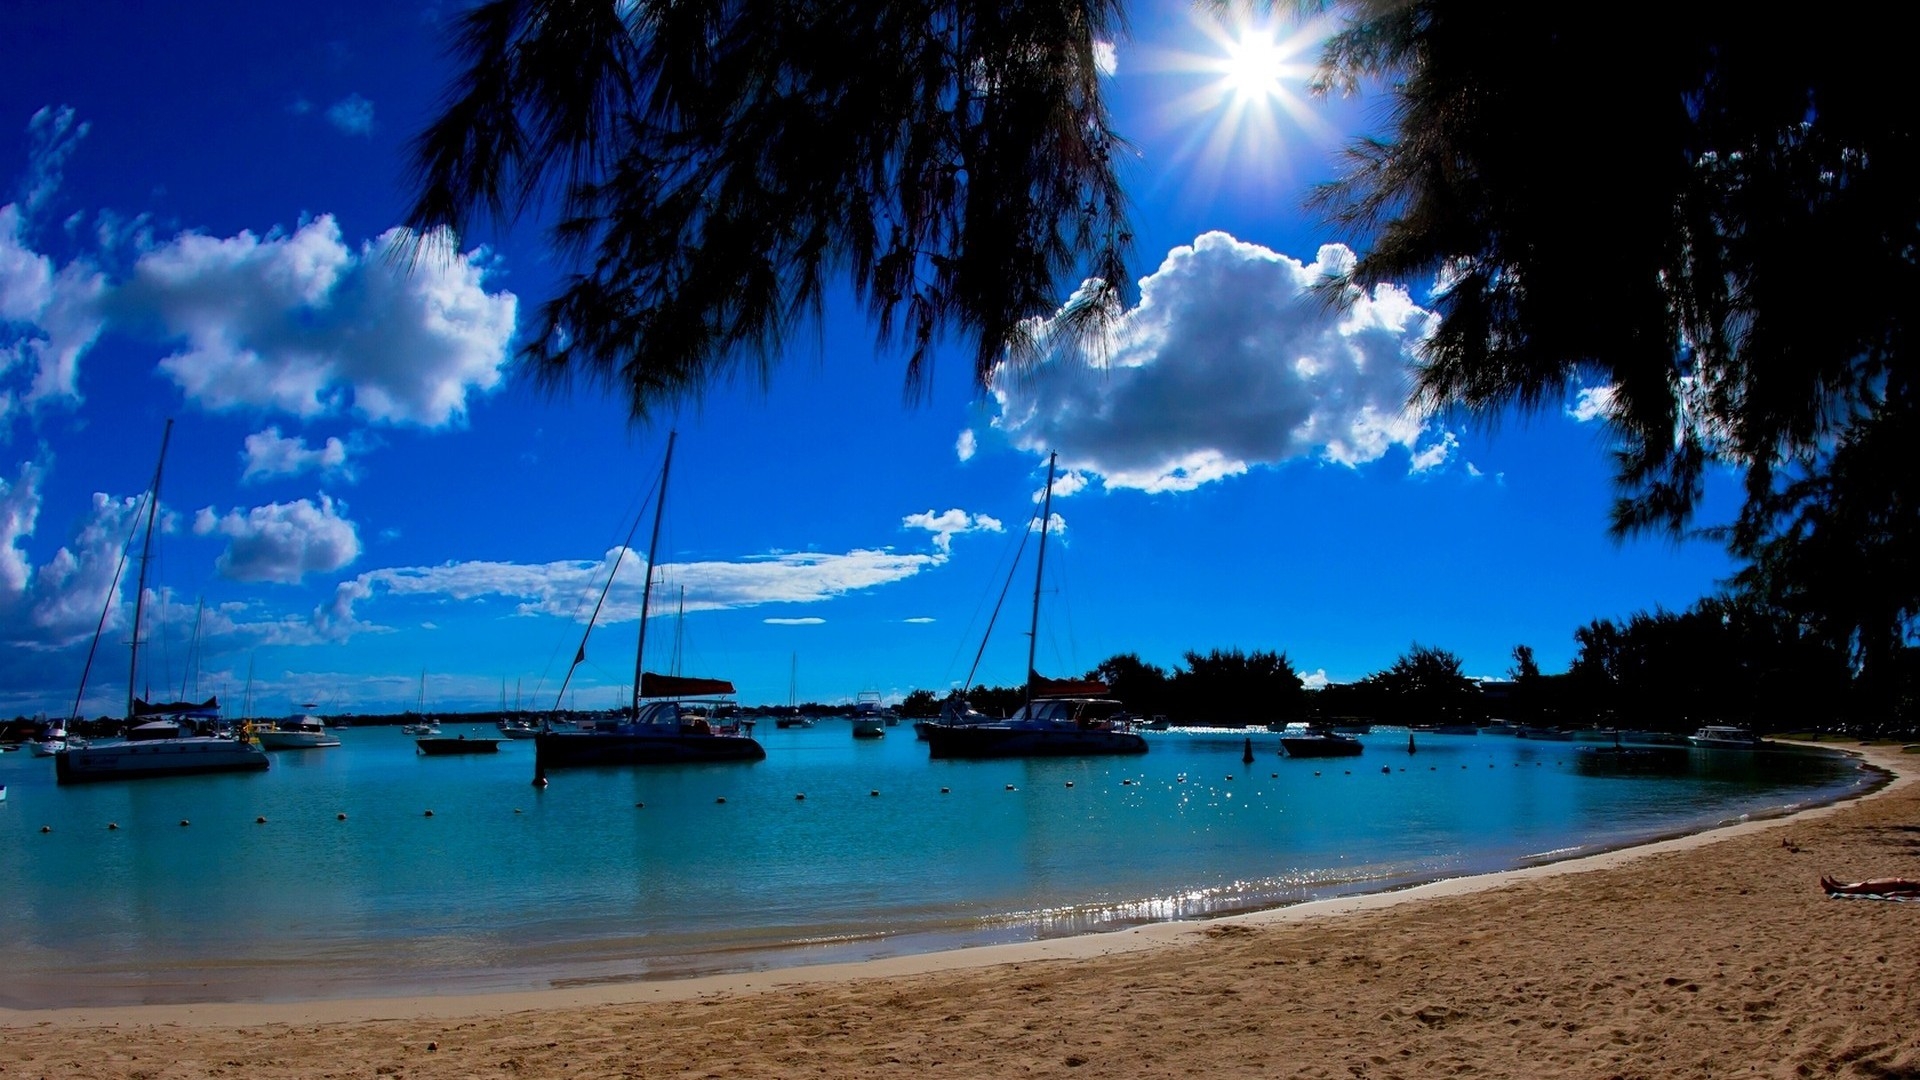 Bright Hd Wallpapers For Iphone Bright Day At Mauritius Wallpaper Allwallpaper In 7578